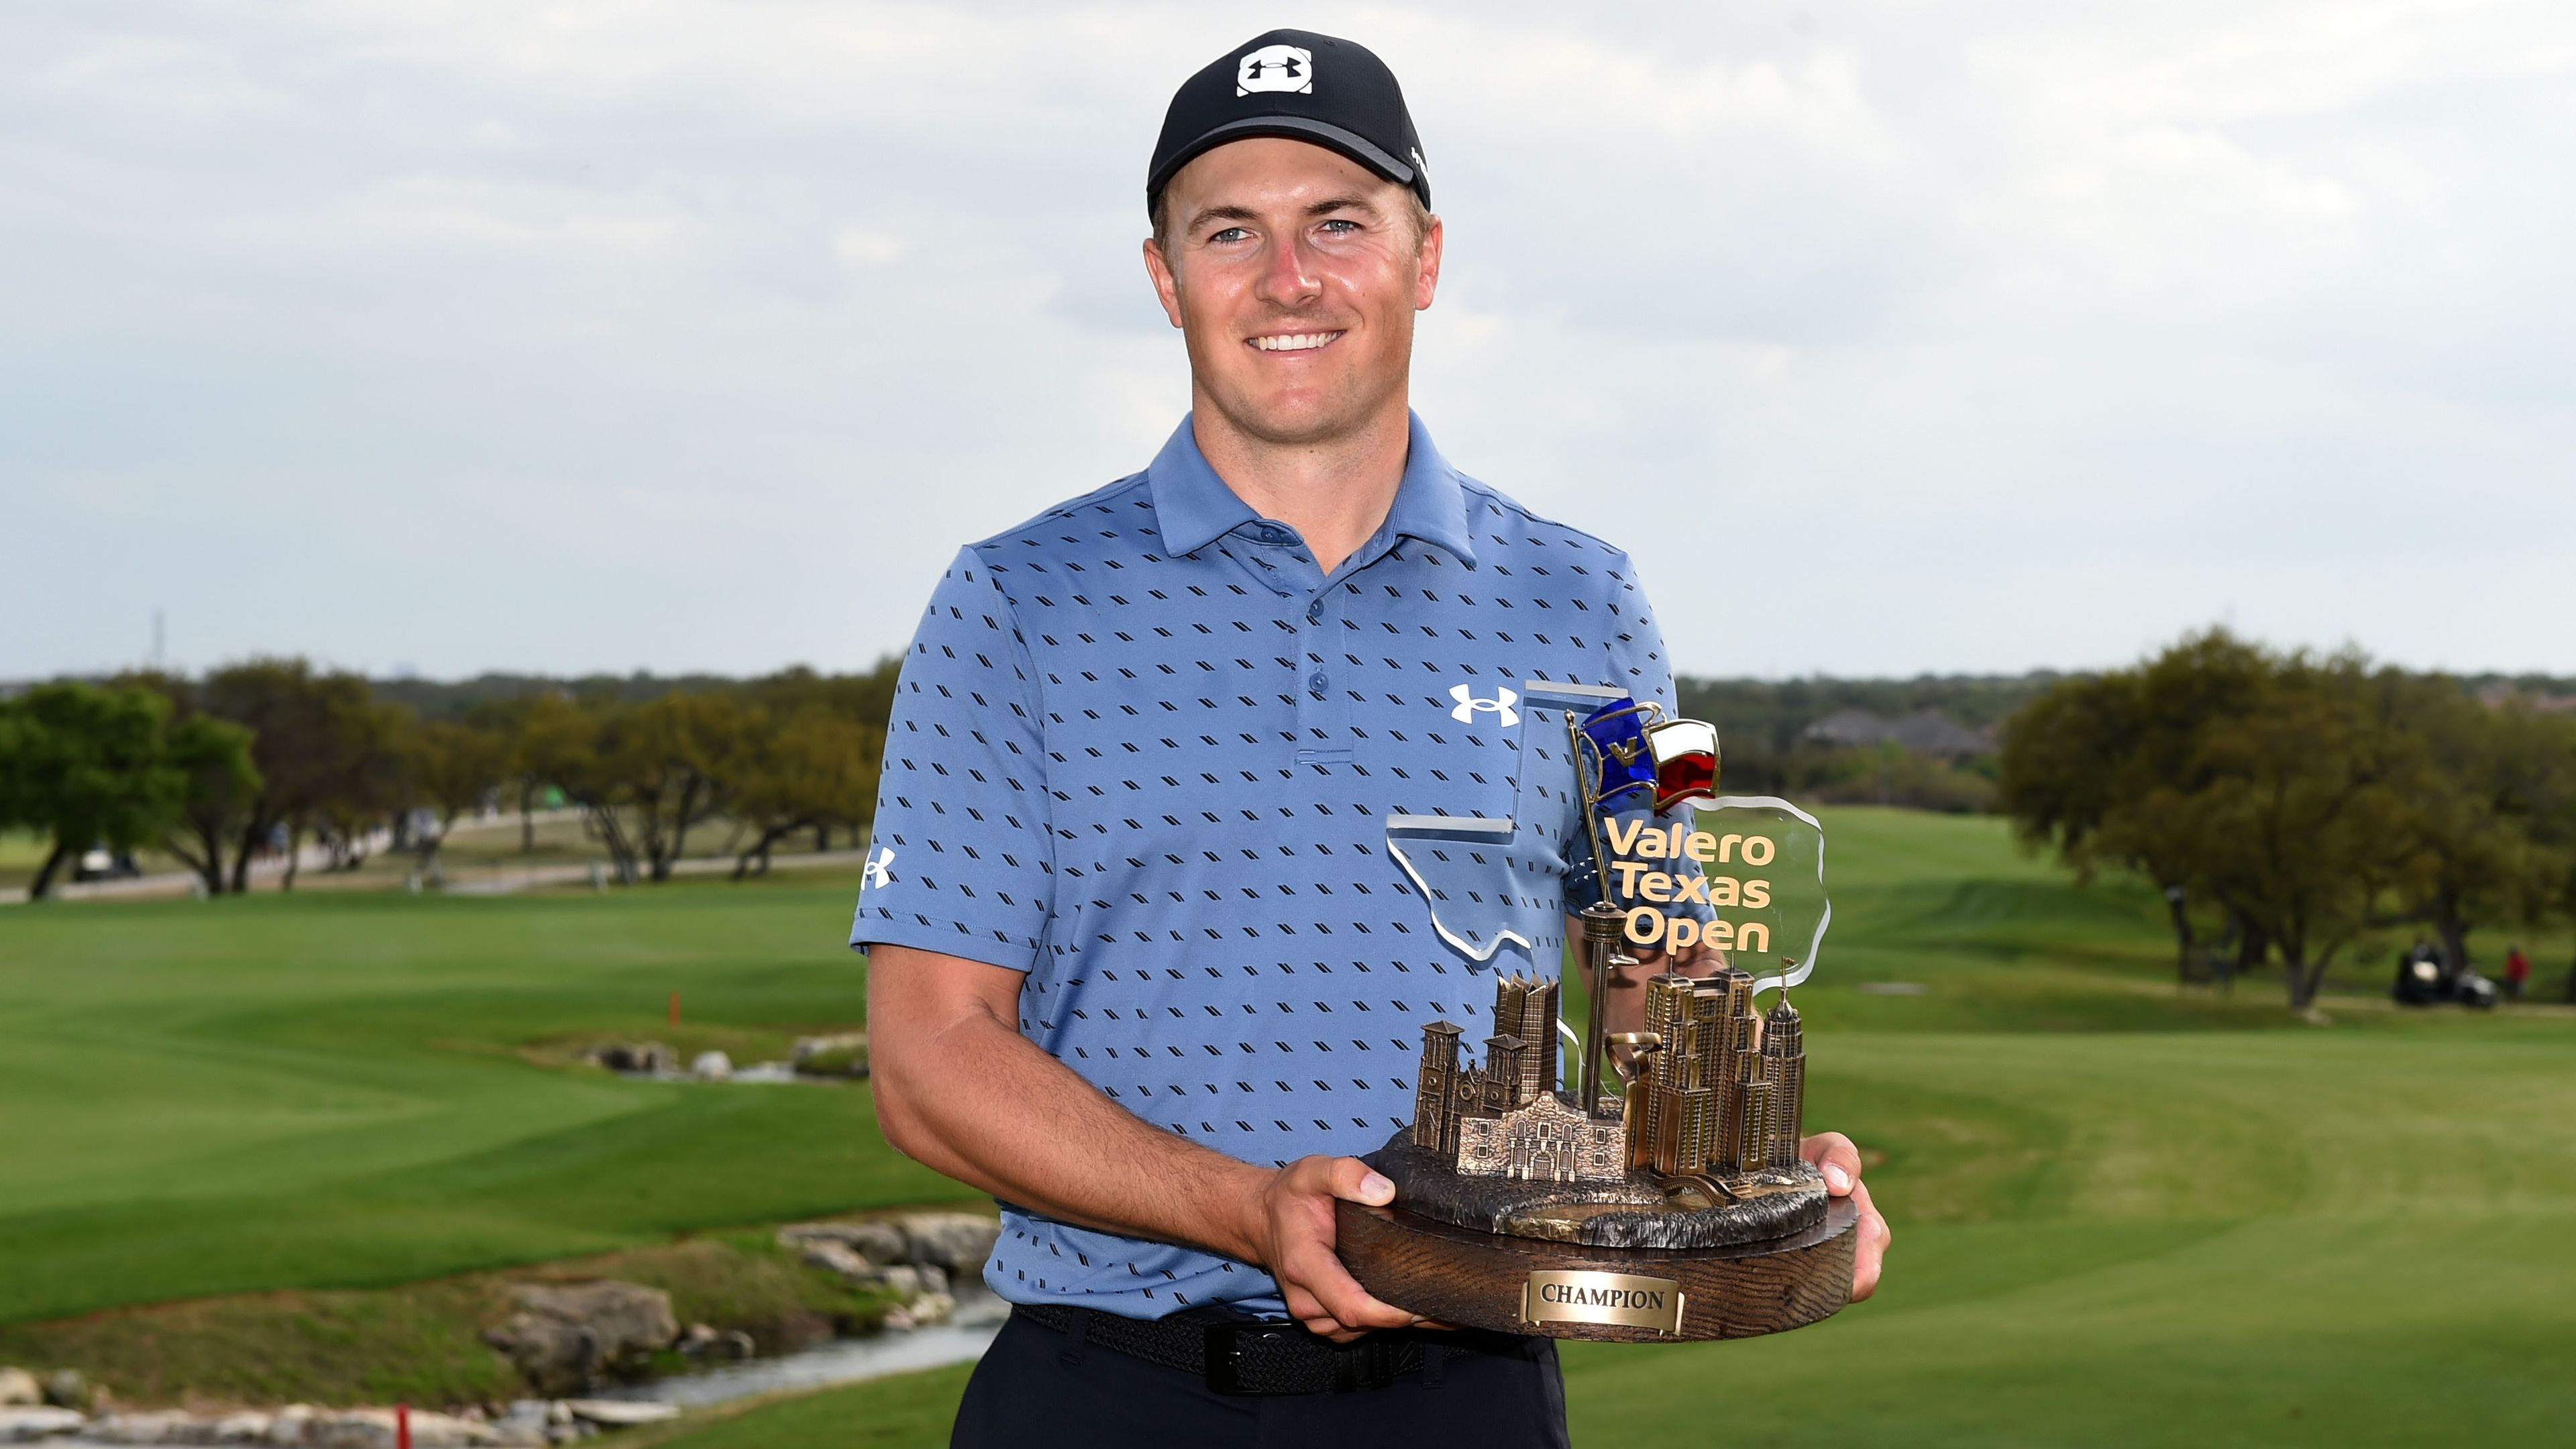 Jordan Spieth poses with the trophy after winning the Texas Open.